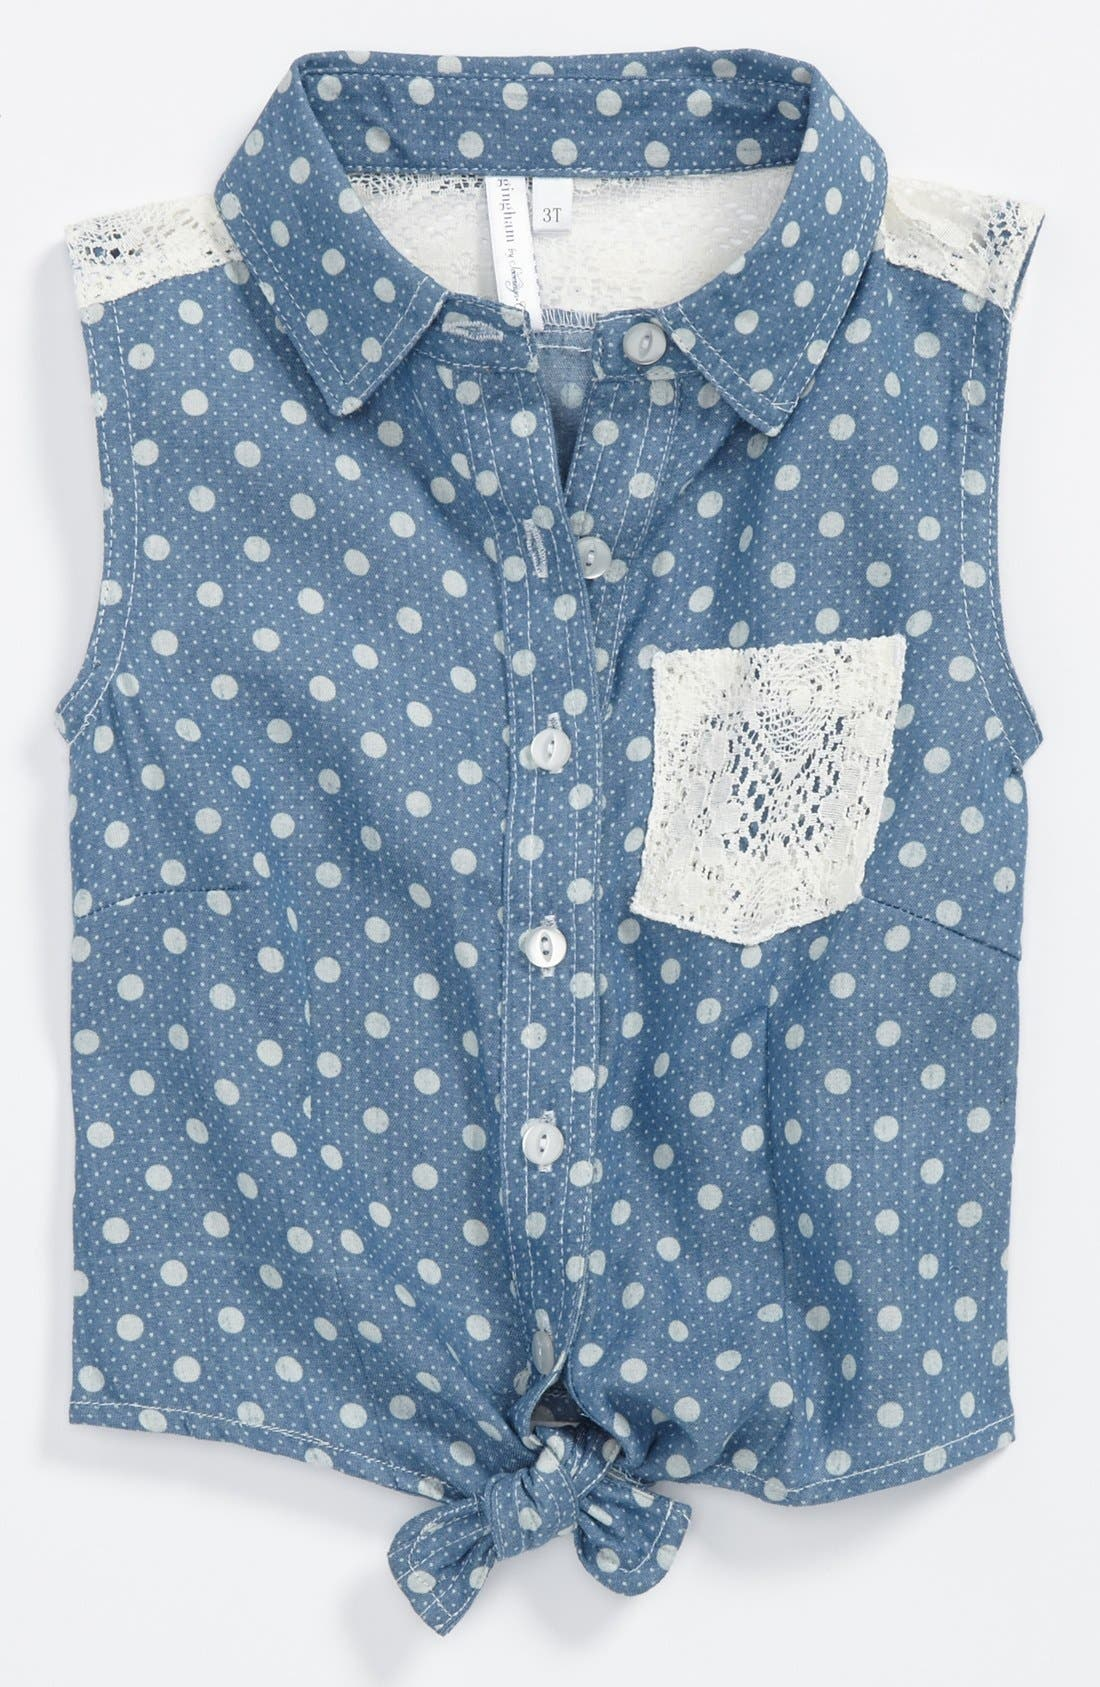 Alternate Image 1 Selected - gingham by Sovereign Code 'Lacey' Denim Top (Toddler Girls)